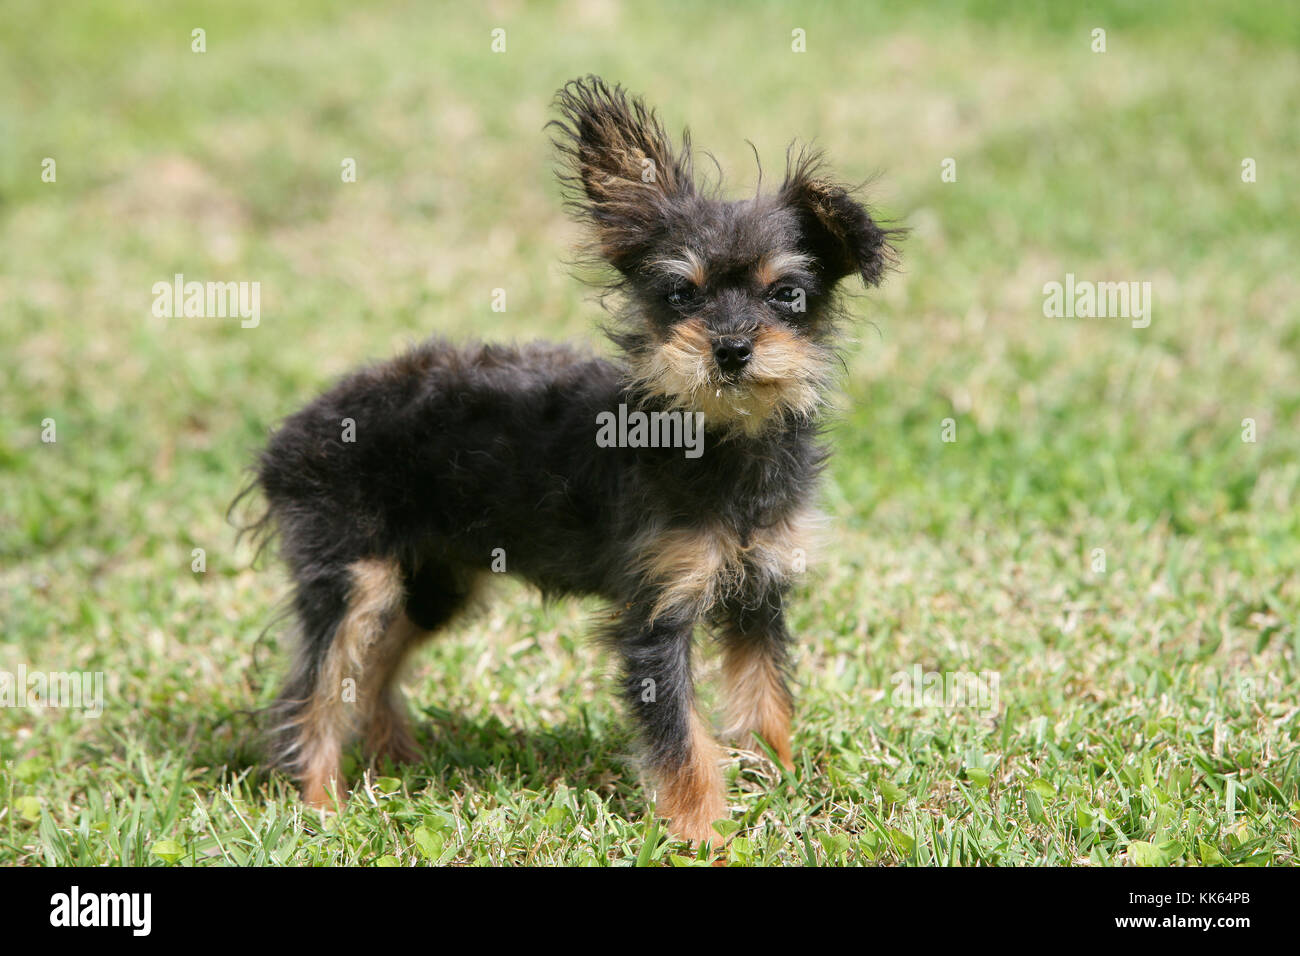 Yorkiepoo Yorkshire Terrier X Poodle Puppy Stock Photo 166707251